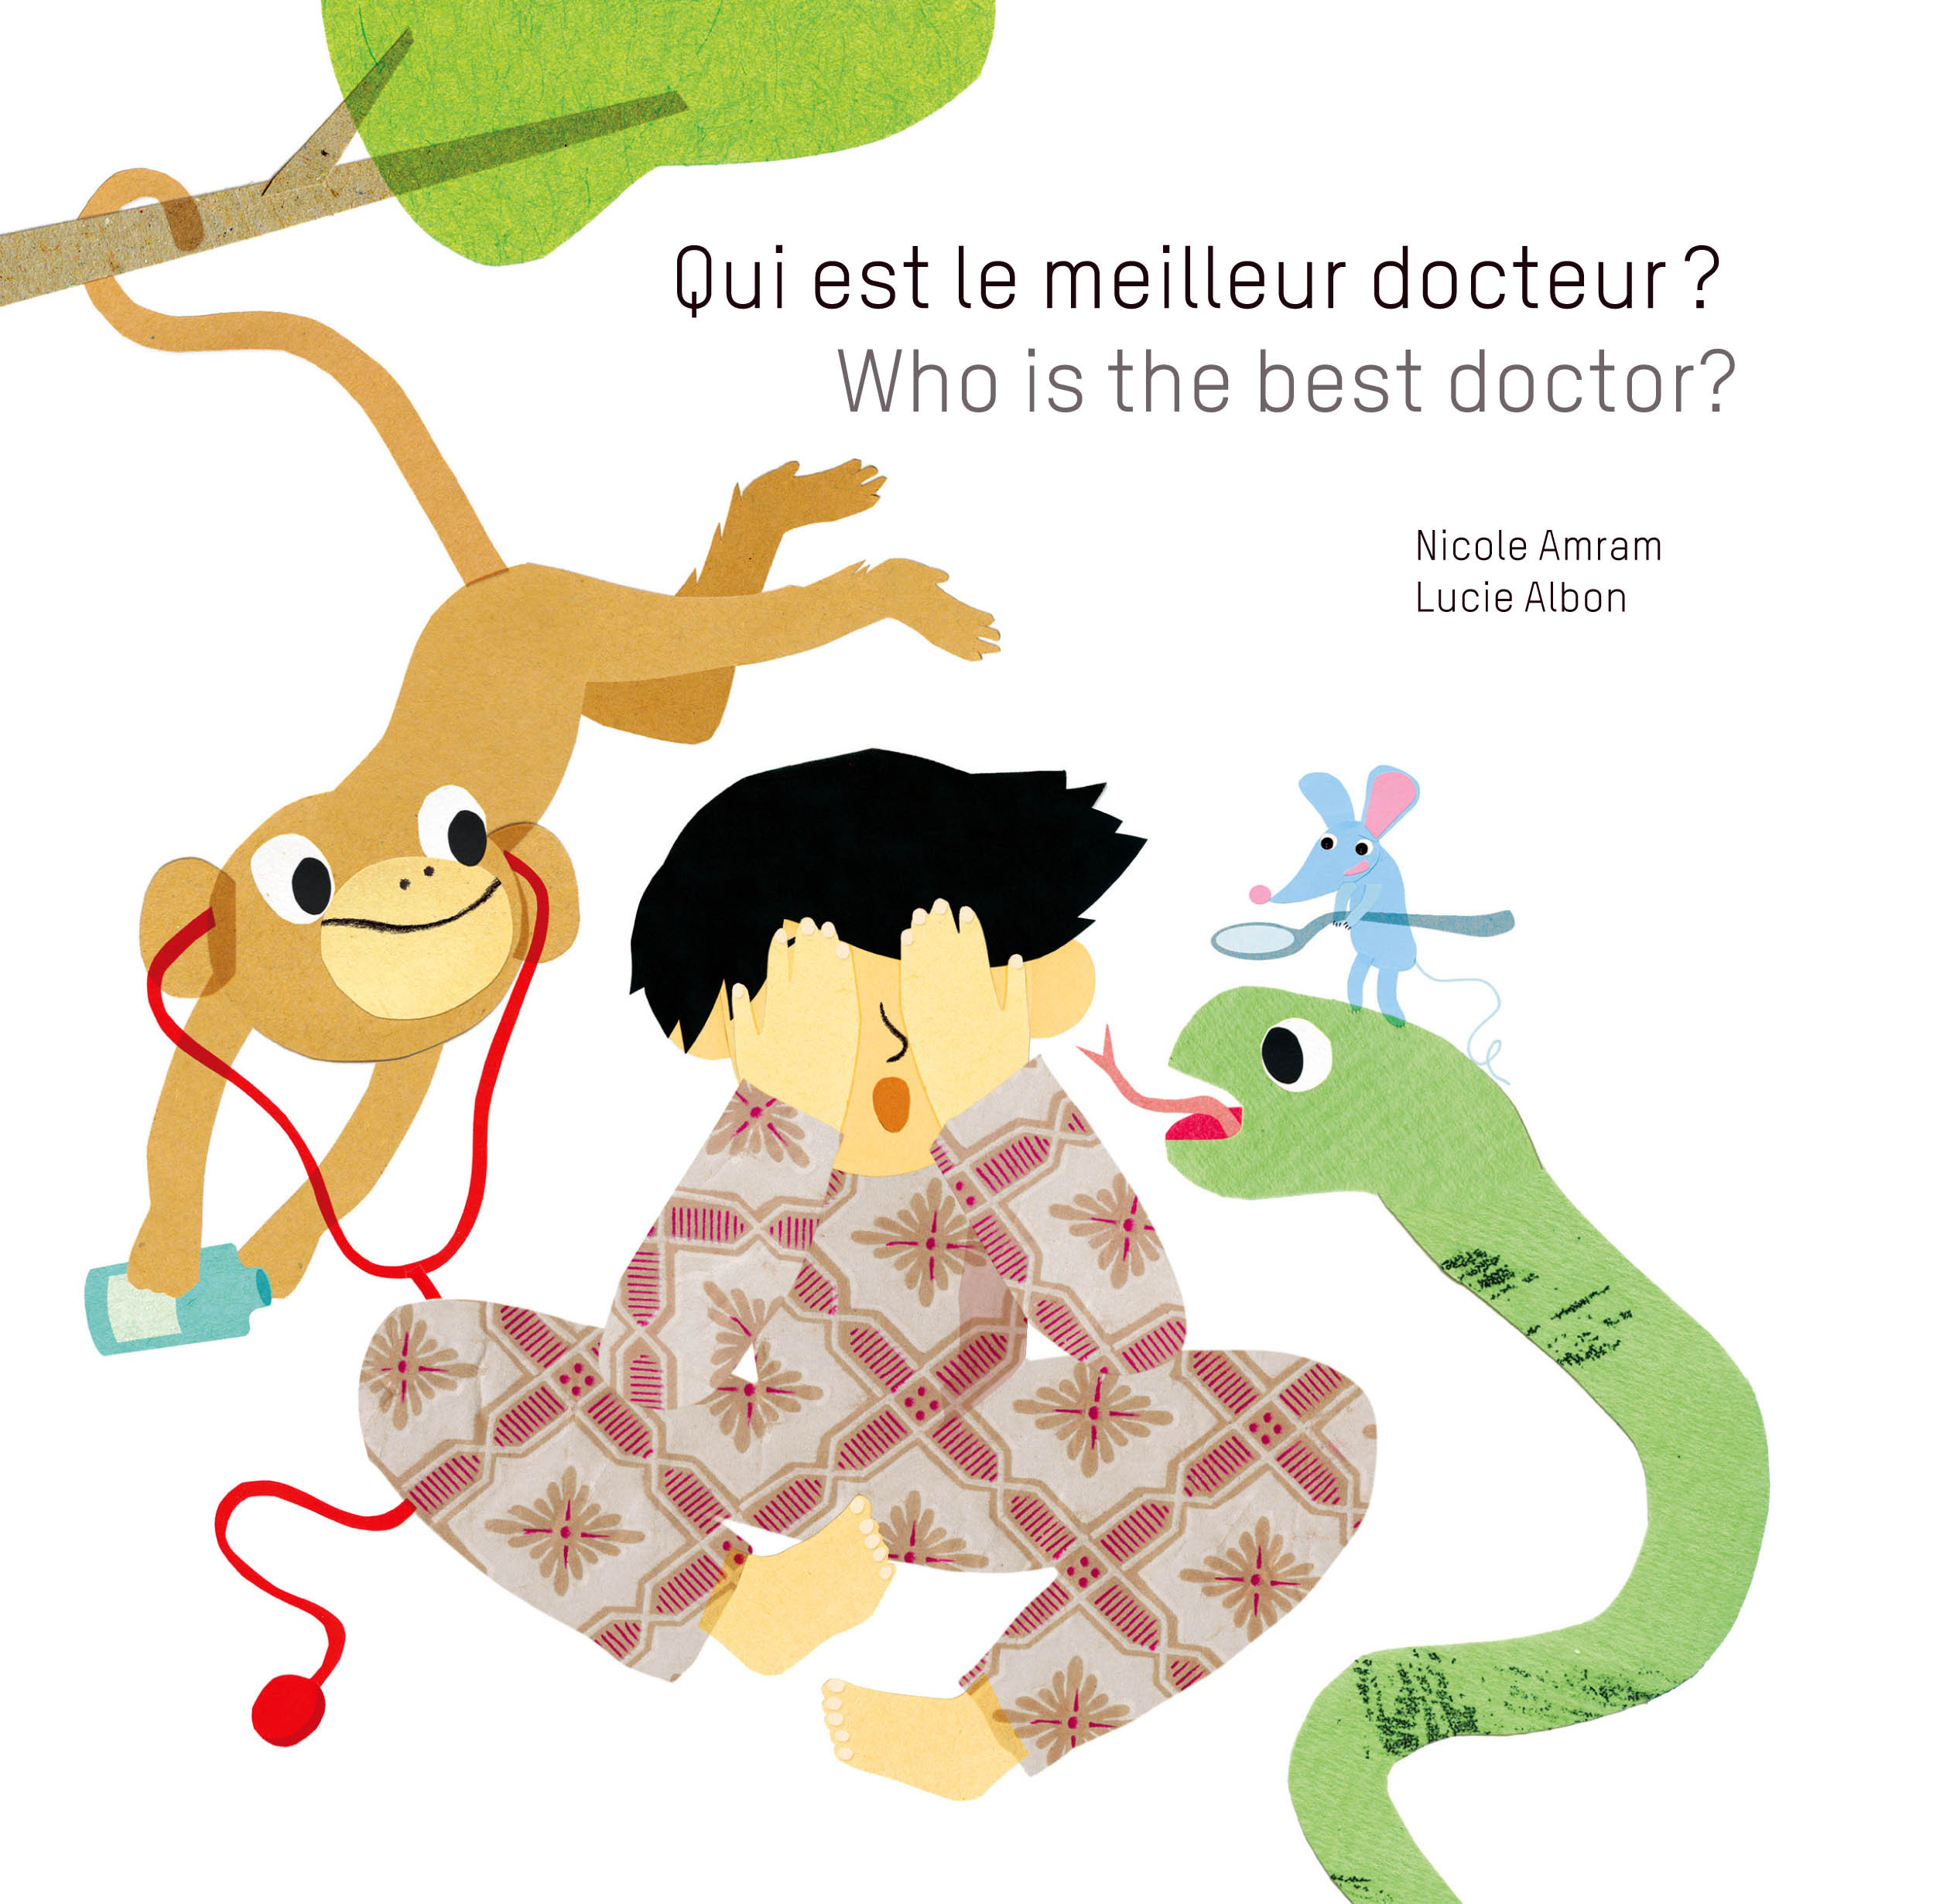 QUI EST LE MEILLEUR DOCTEUR? WHO IS THE BEST DOCTOR?